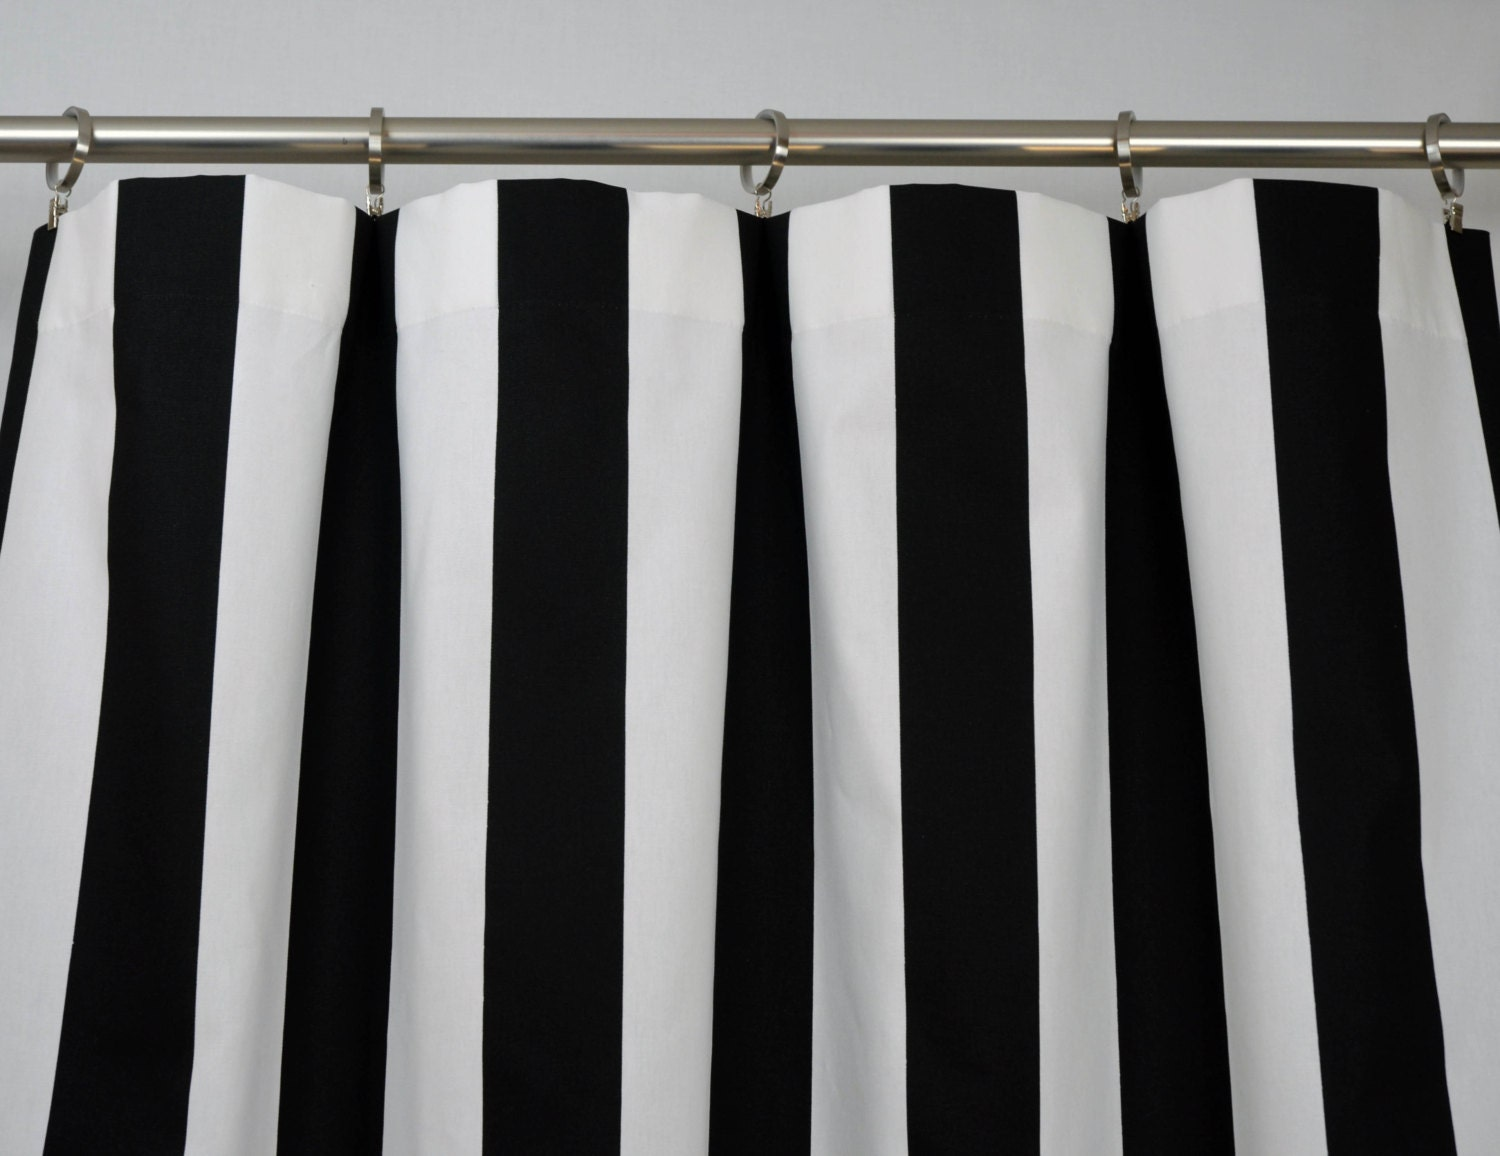 treatments blackout drapes black thick striped curtains window white and size materials full